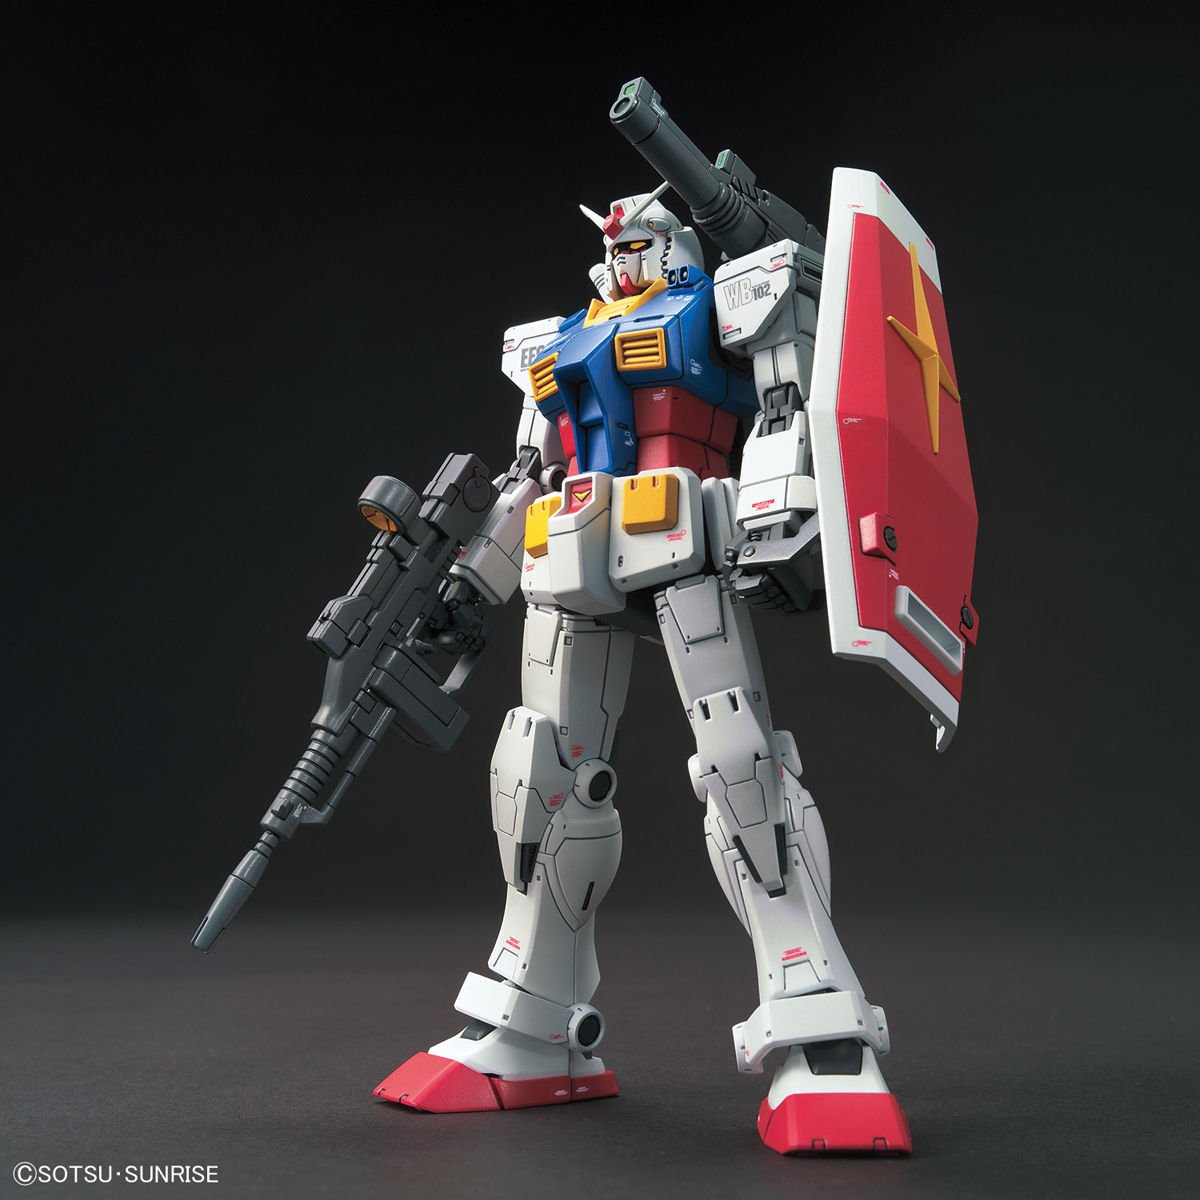 HG 1/144 RX-78-02 鋼彈 (GUNDAM THE ORIGIN Ver.)